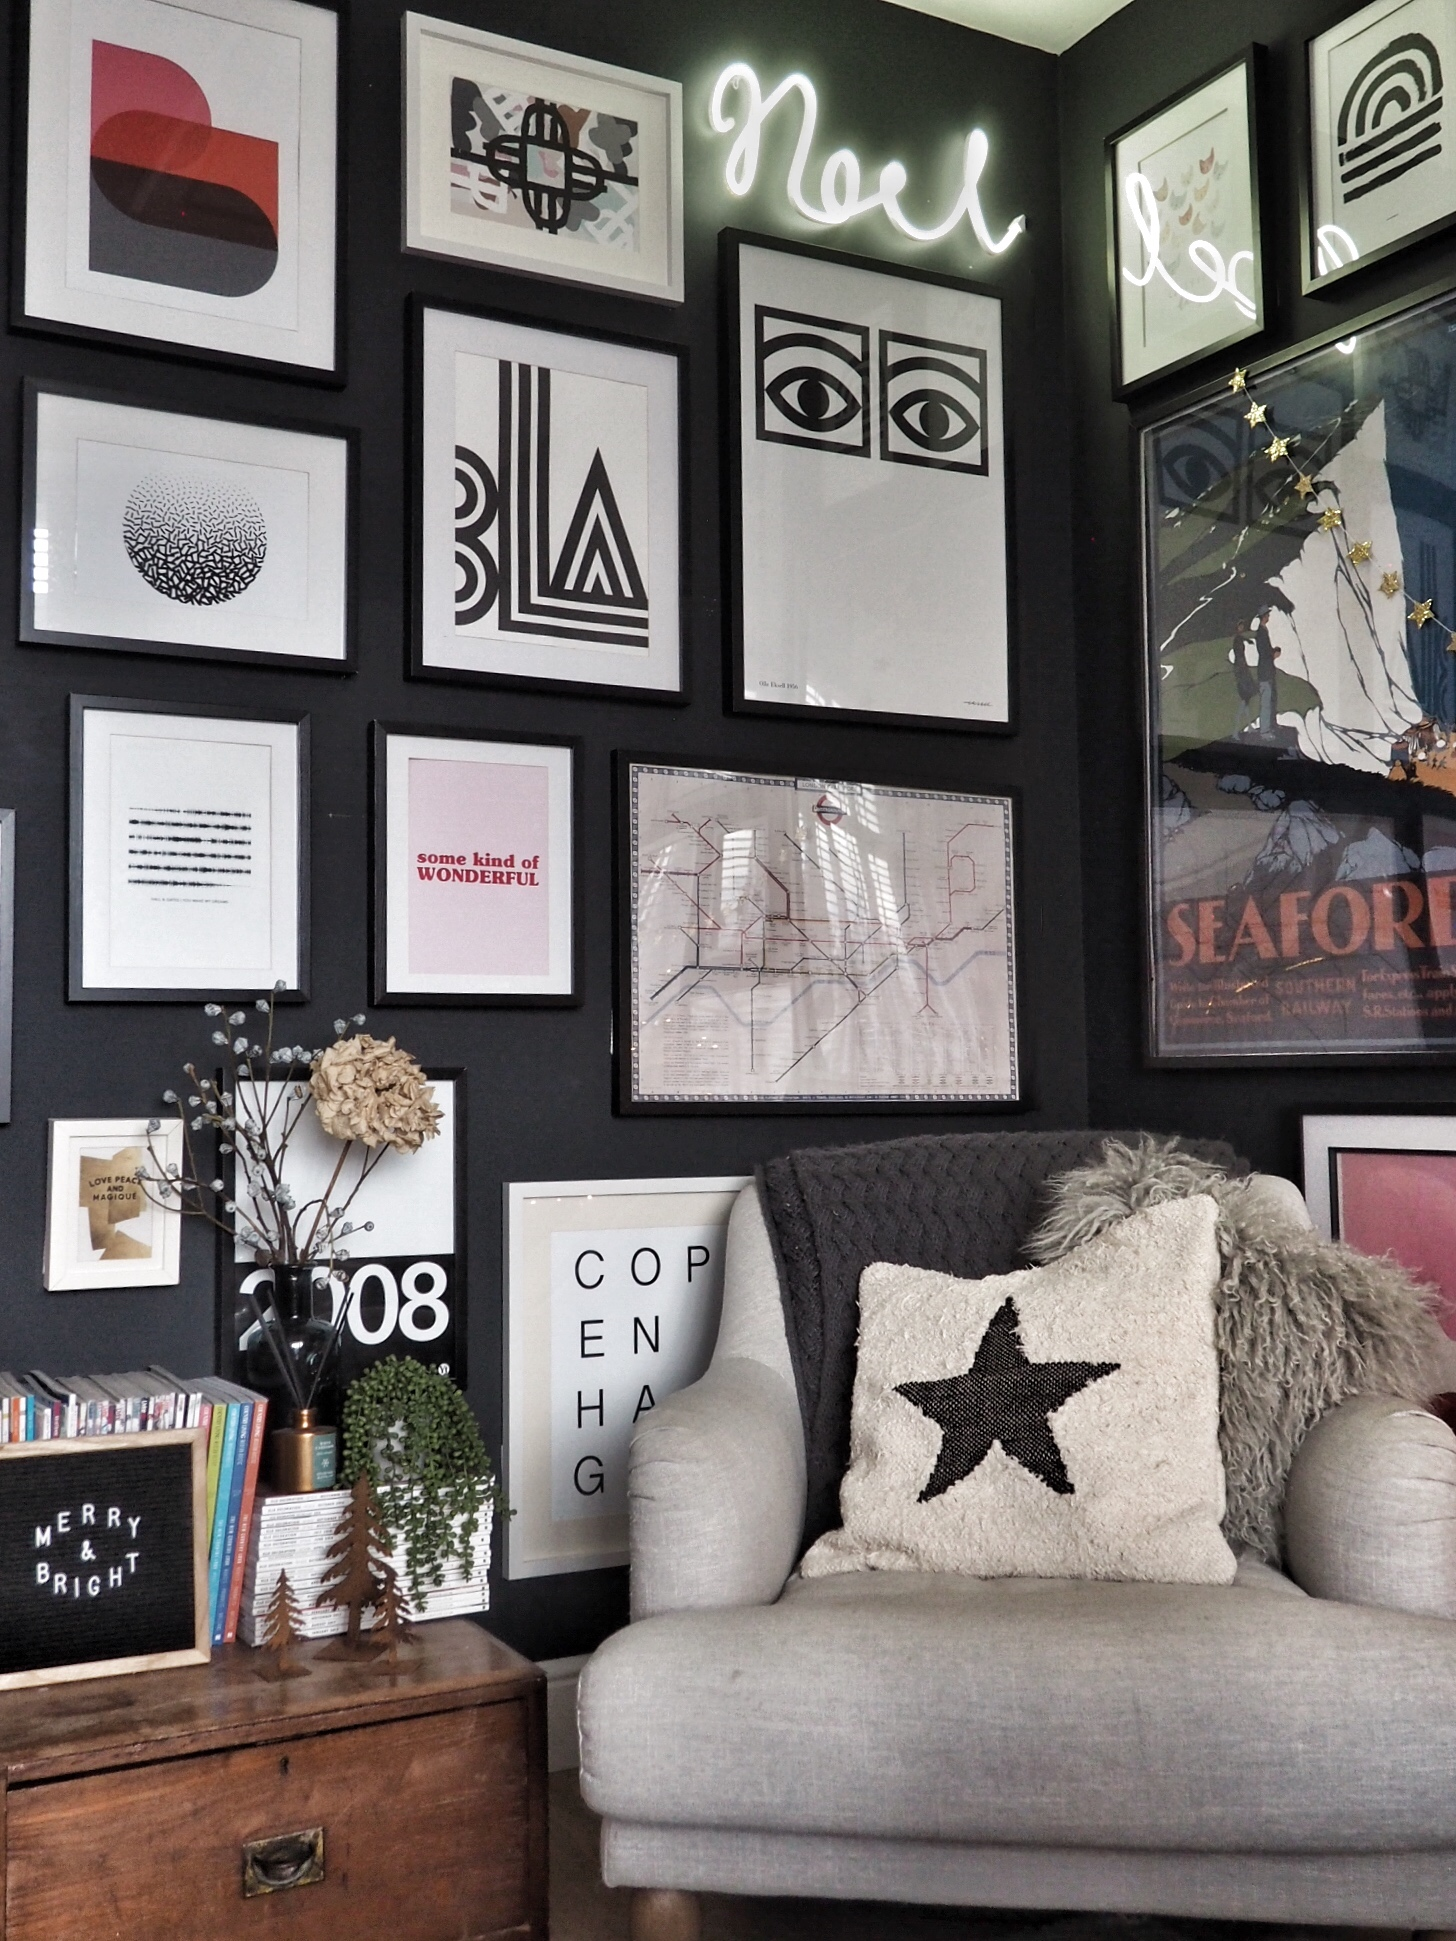 Star cushion from Home of Boho, letter board from Amazon, 'Noel' sign from NEXT.